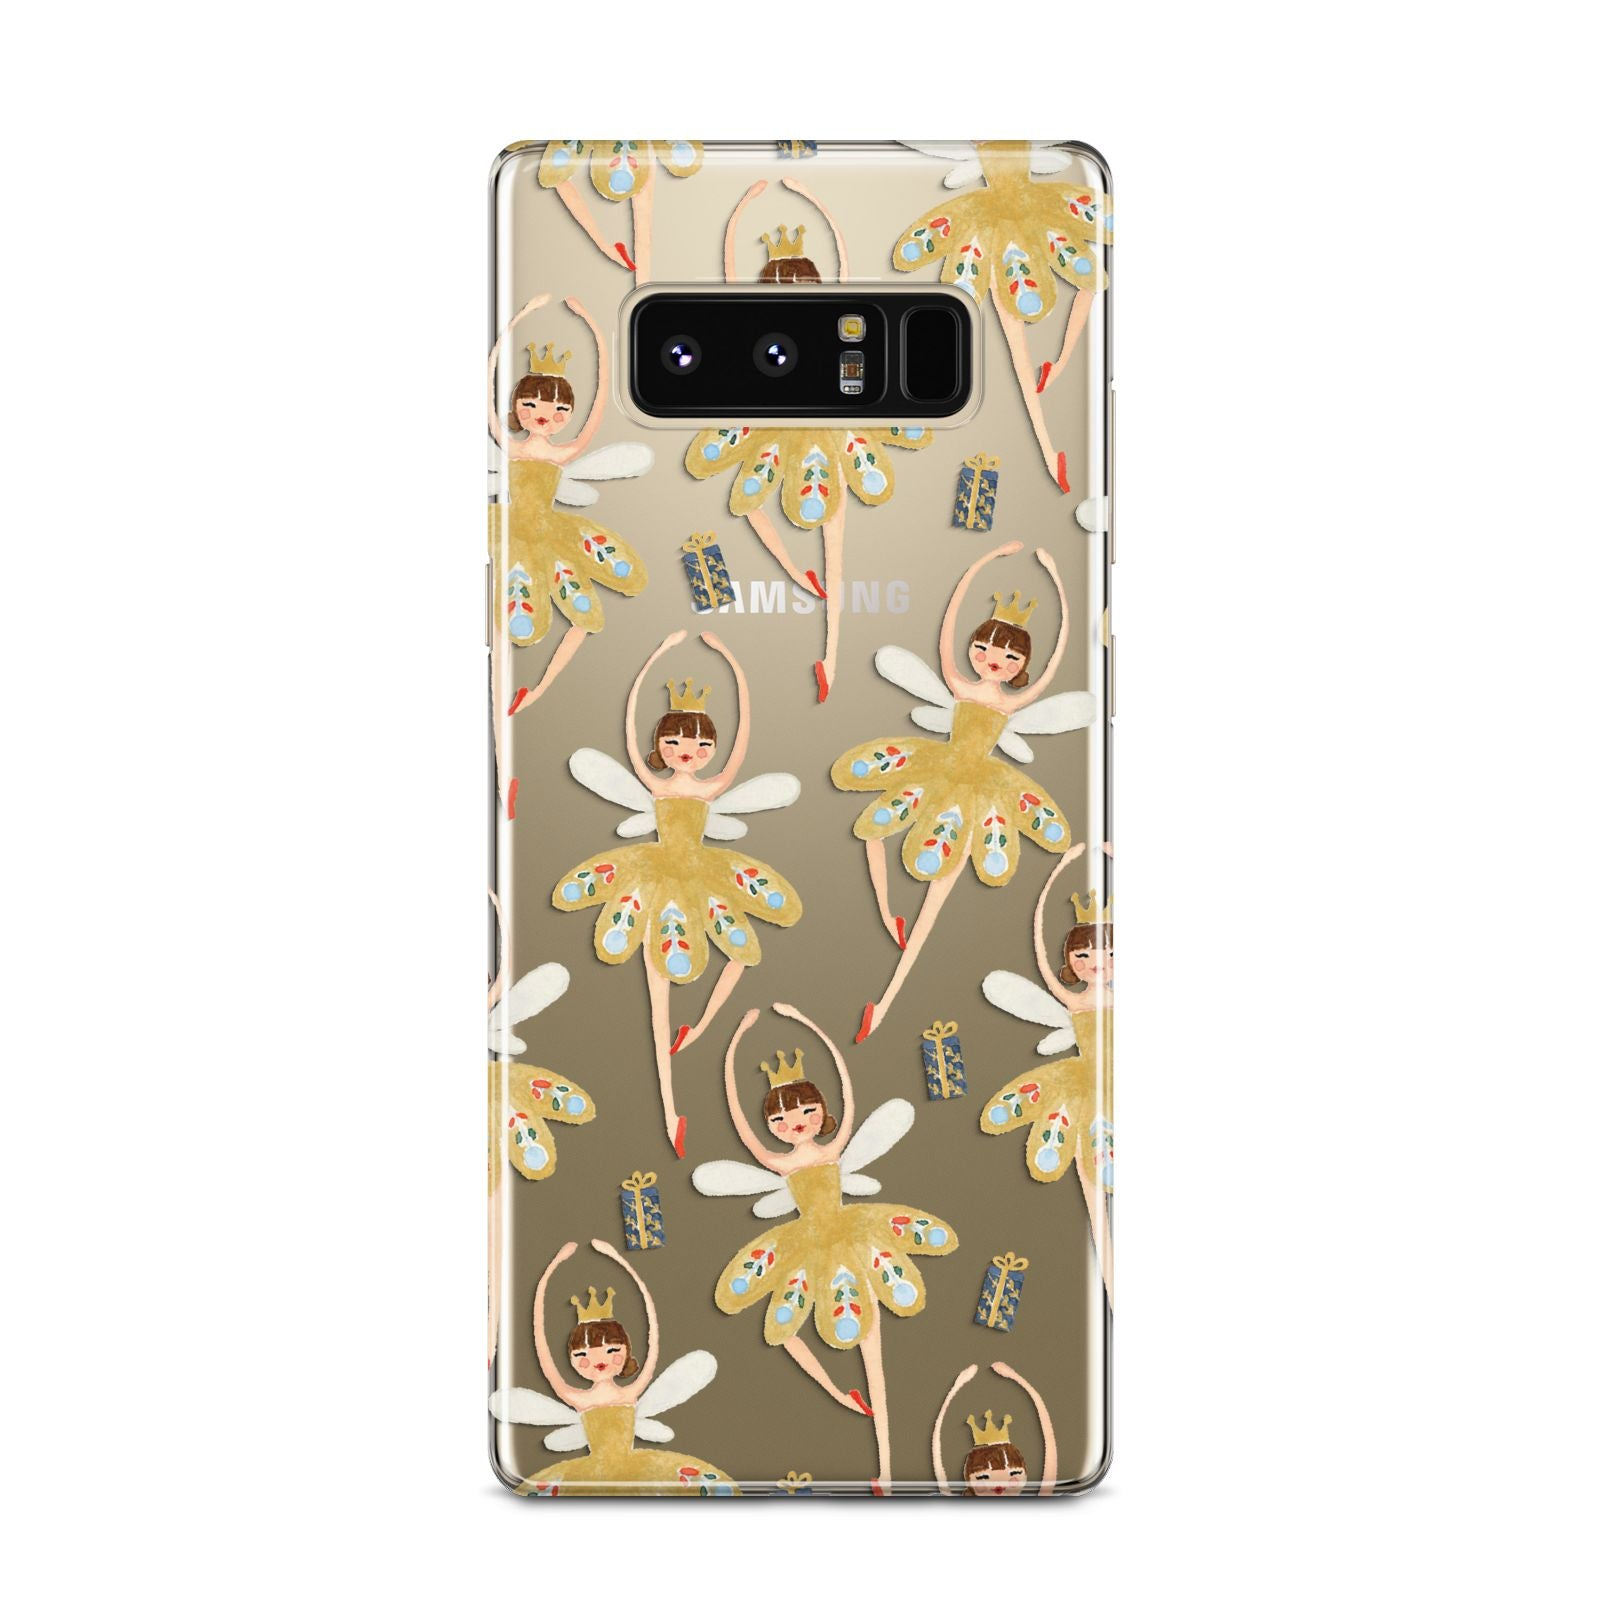 Dancing ballerina princess Samsung Galaxy Note 8 Case